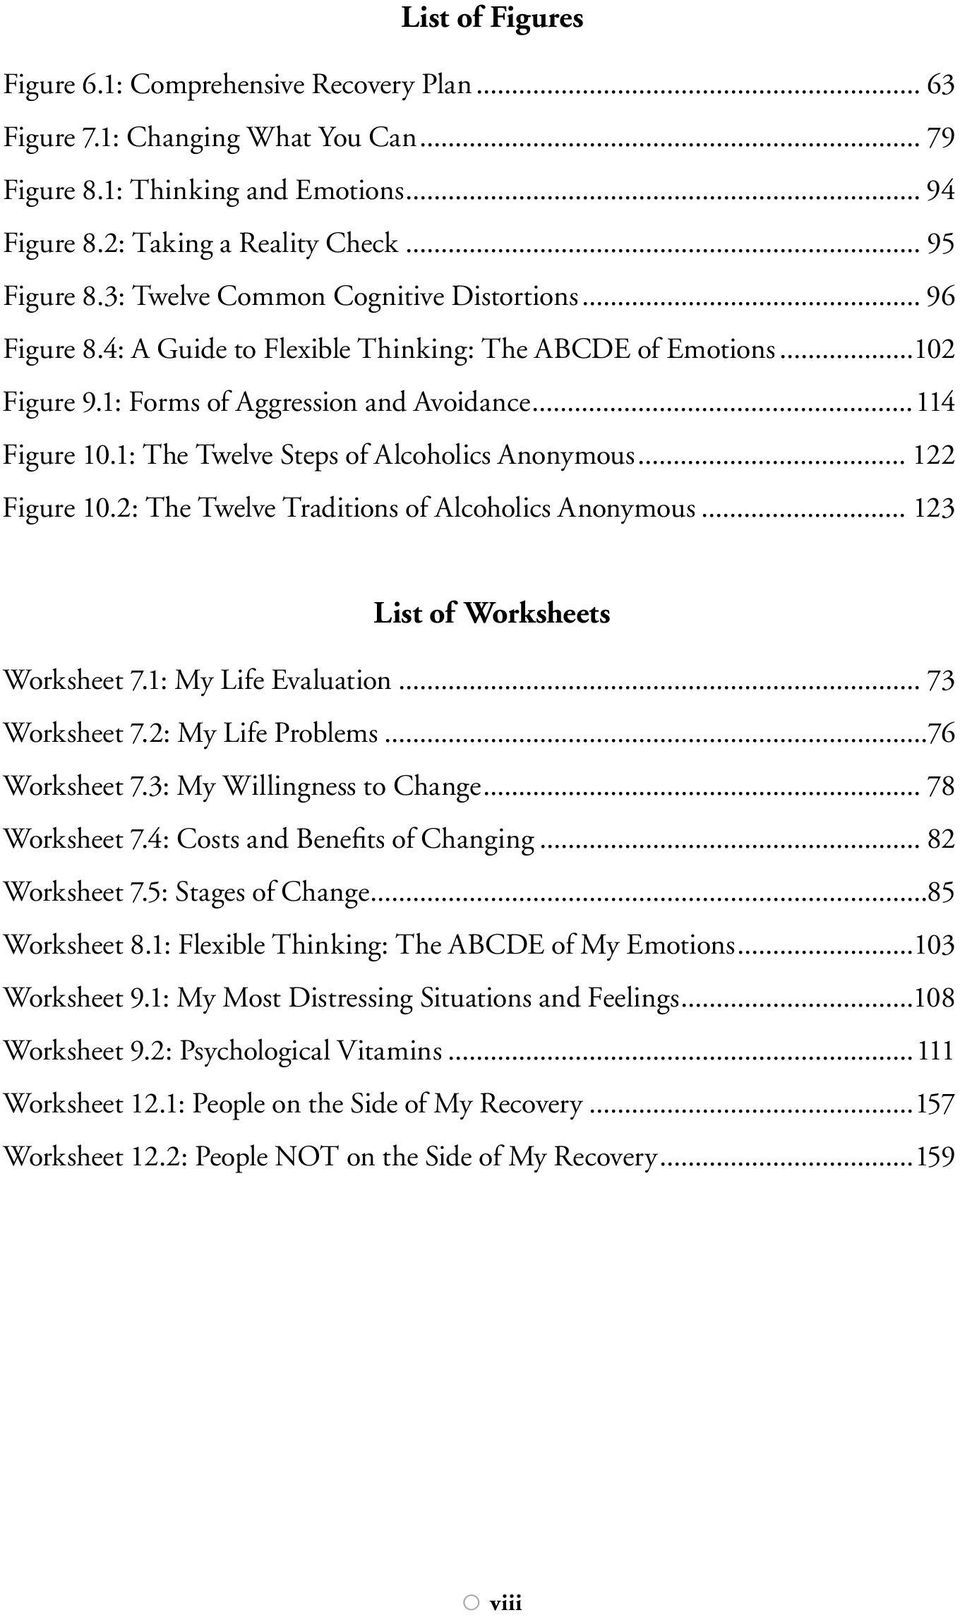 1: The Twelve Steps of Alcoholics Anonymous... 122 Figure 10.2: The Twelve Traditions of Alcoholics Anonymous... 123 List of Worksheets Worksheet 7.1: My Life Evaluation... 73 Worksheet 7.